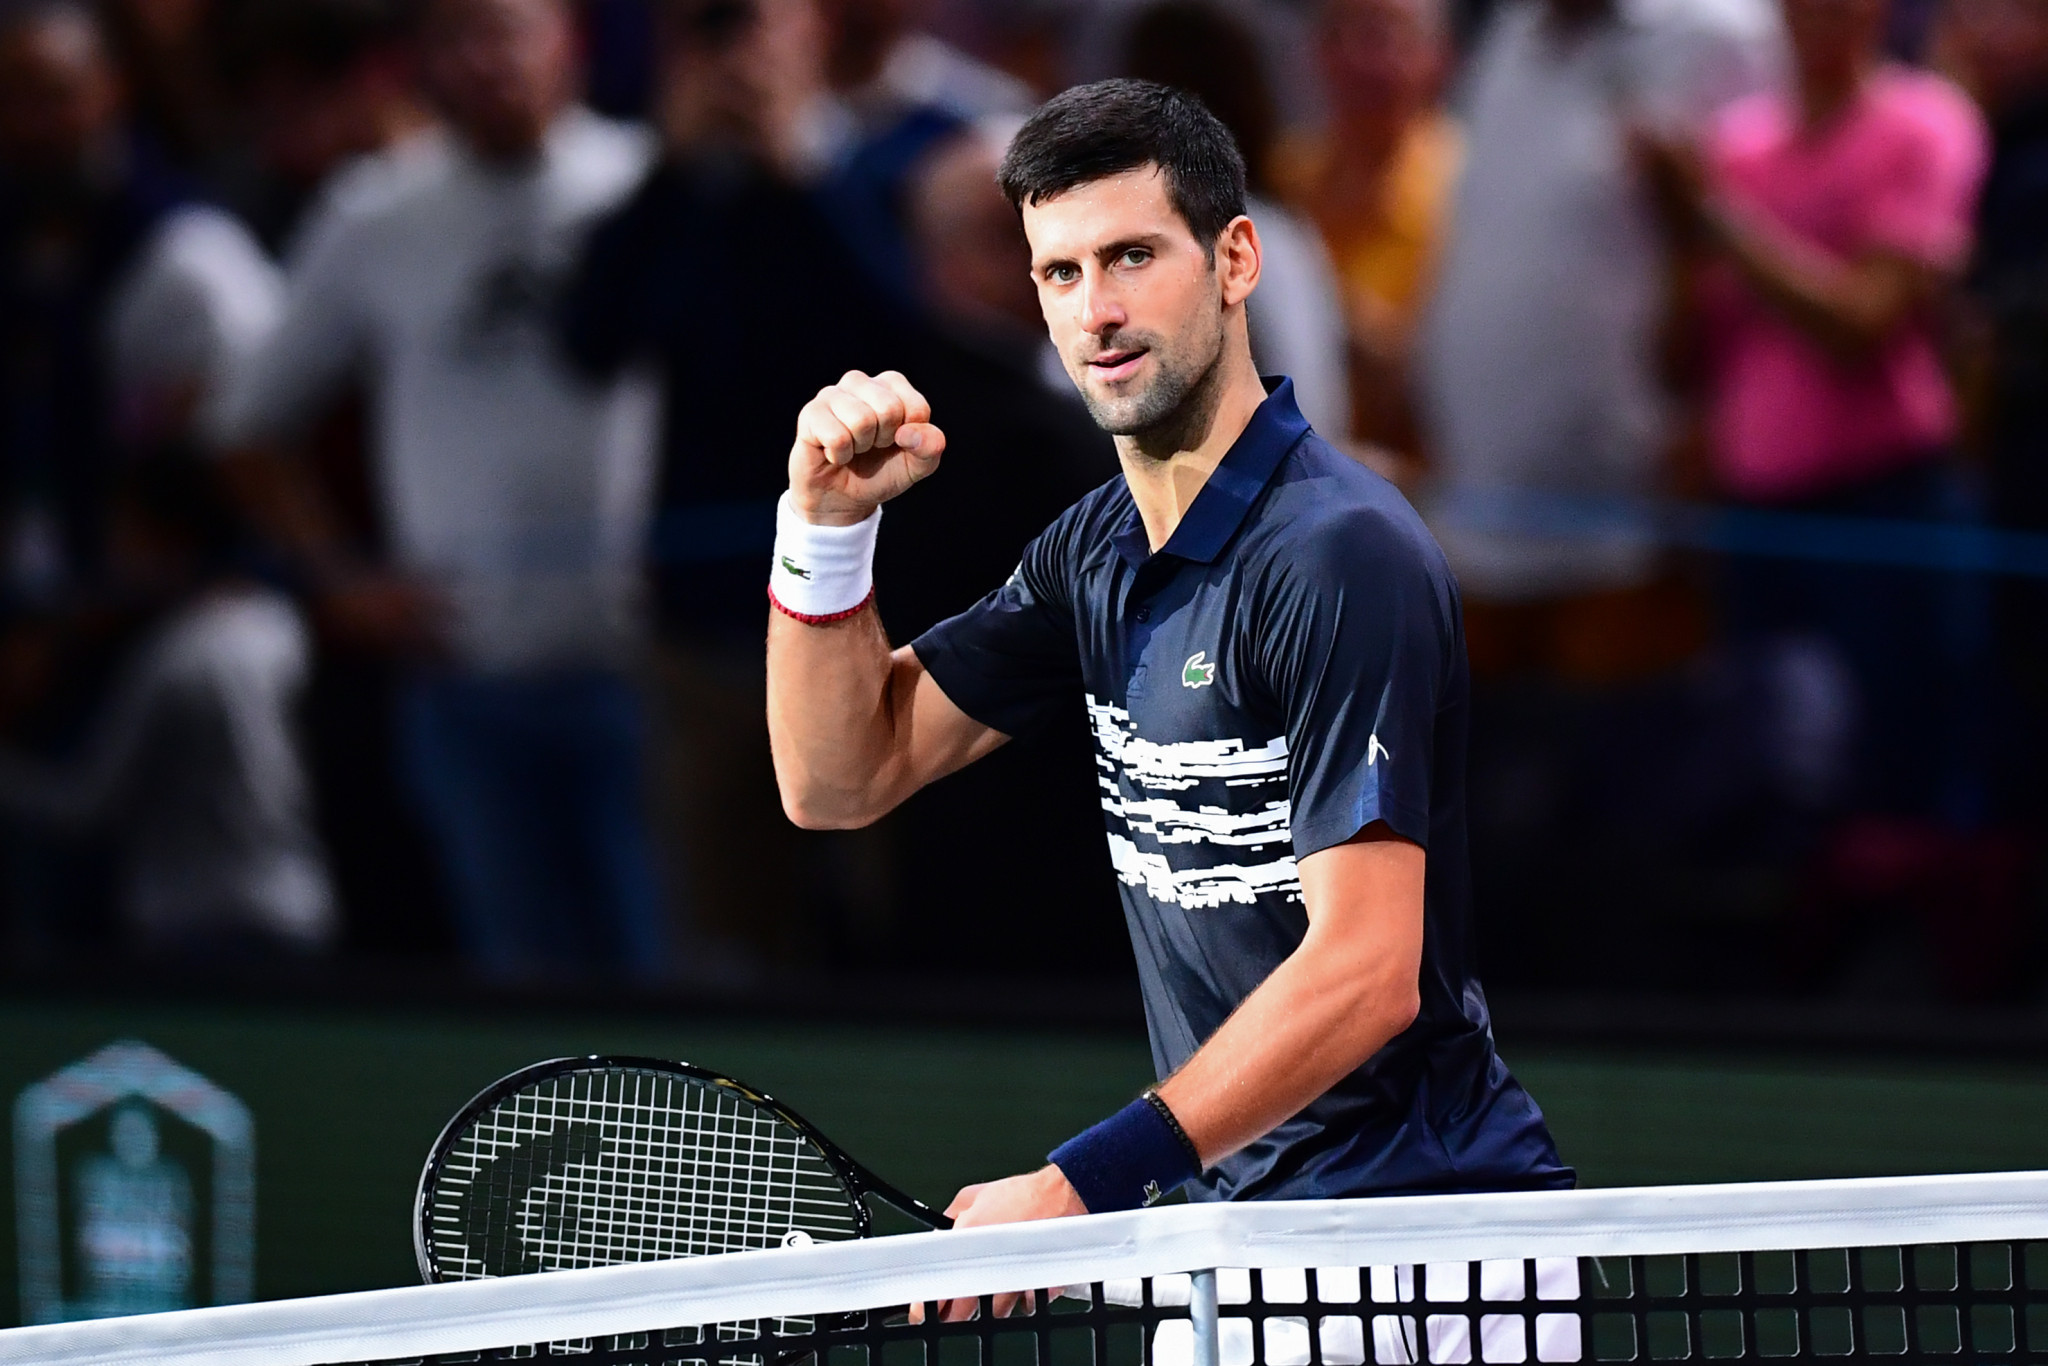 Djokovic eases past Tsitsipas to reach semi-finals of Paris Masters